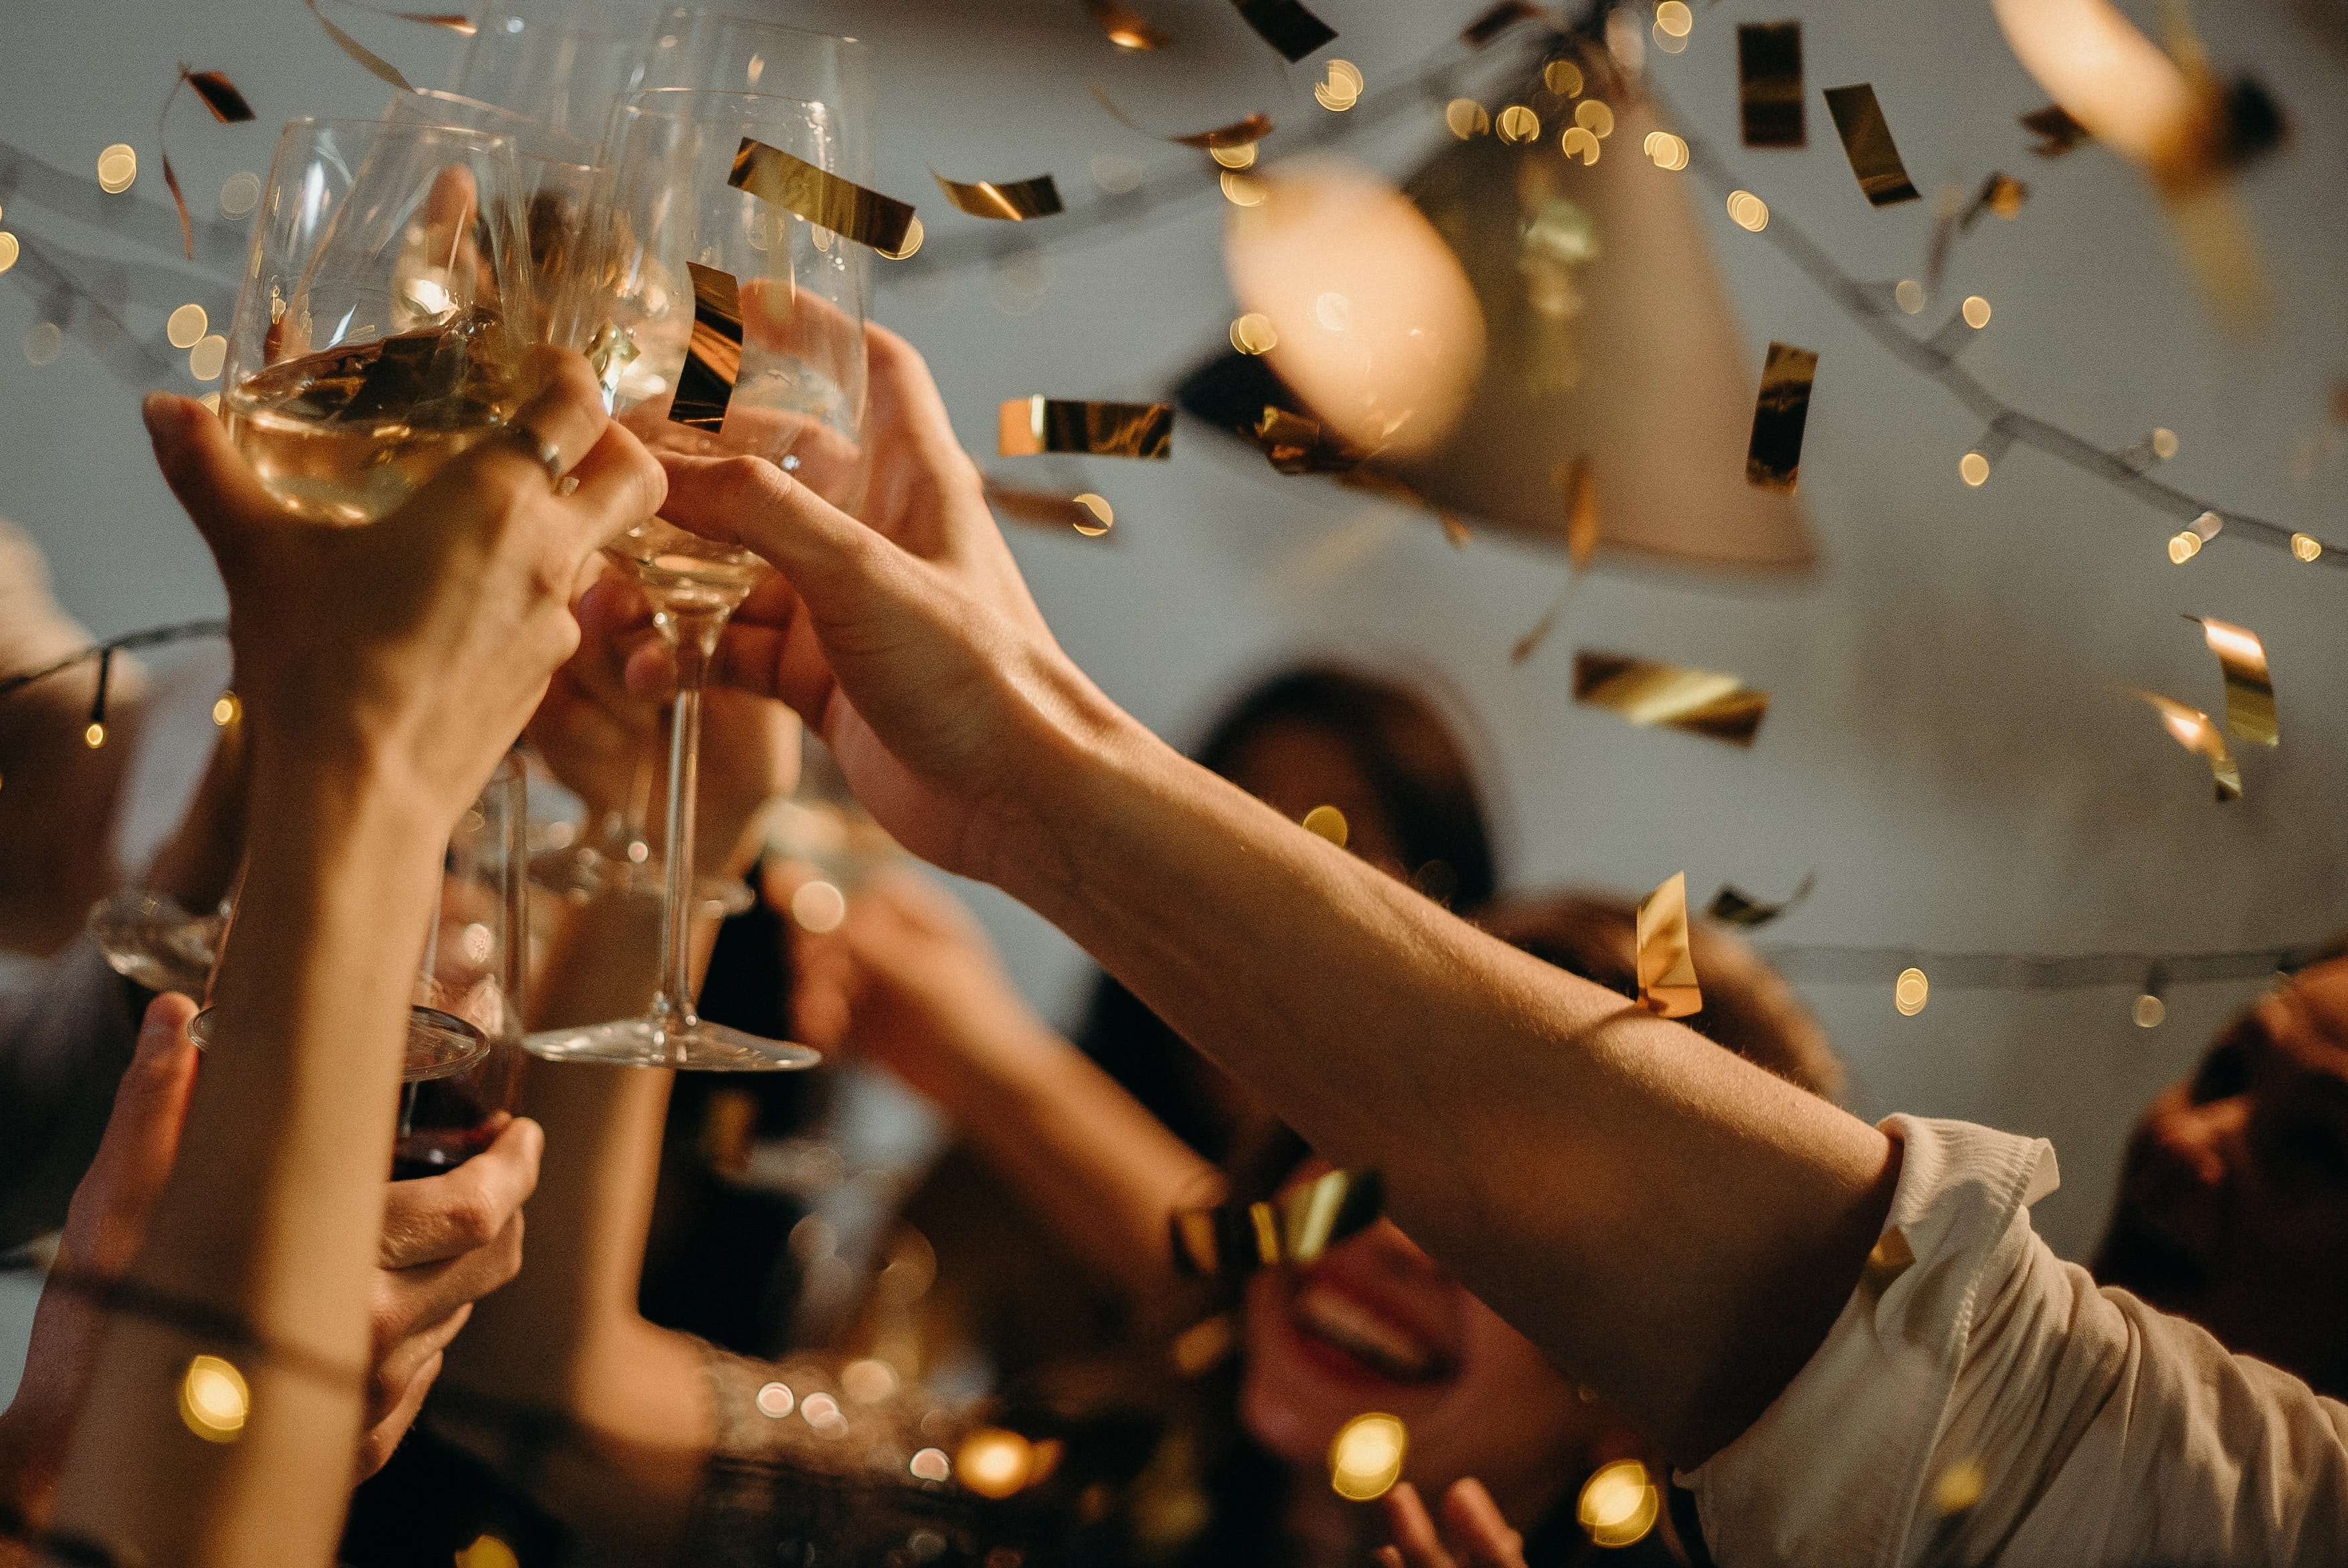 Everybody was having fun at the wedding party—especially me | Source: Pexels